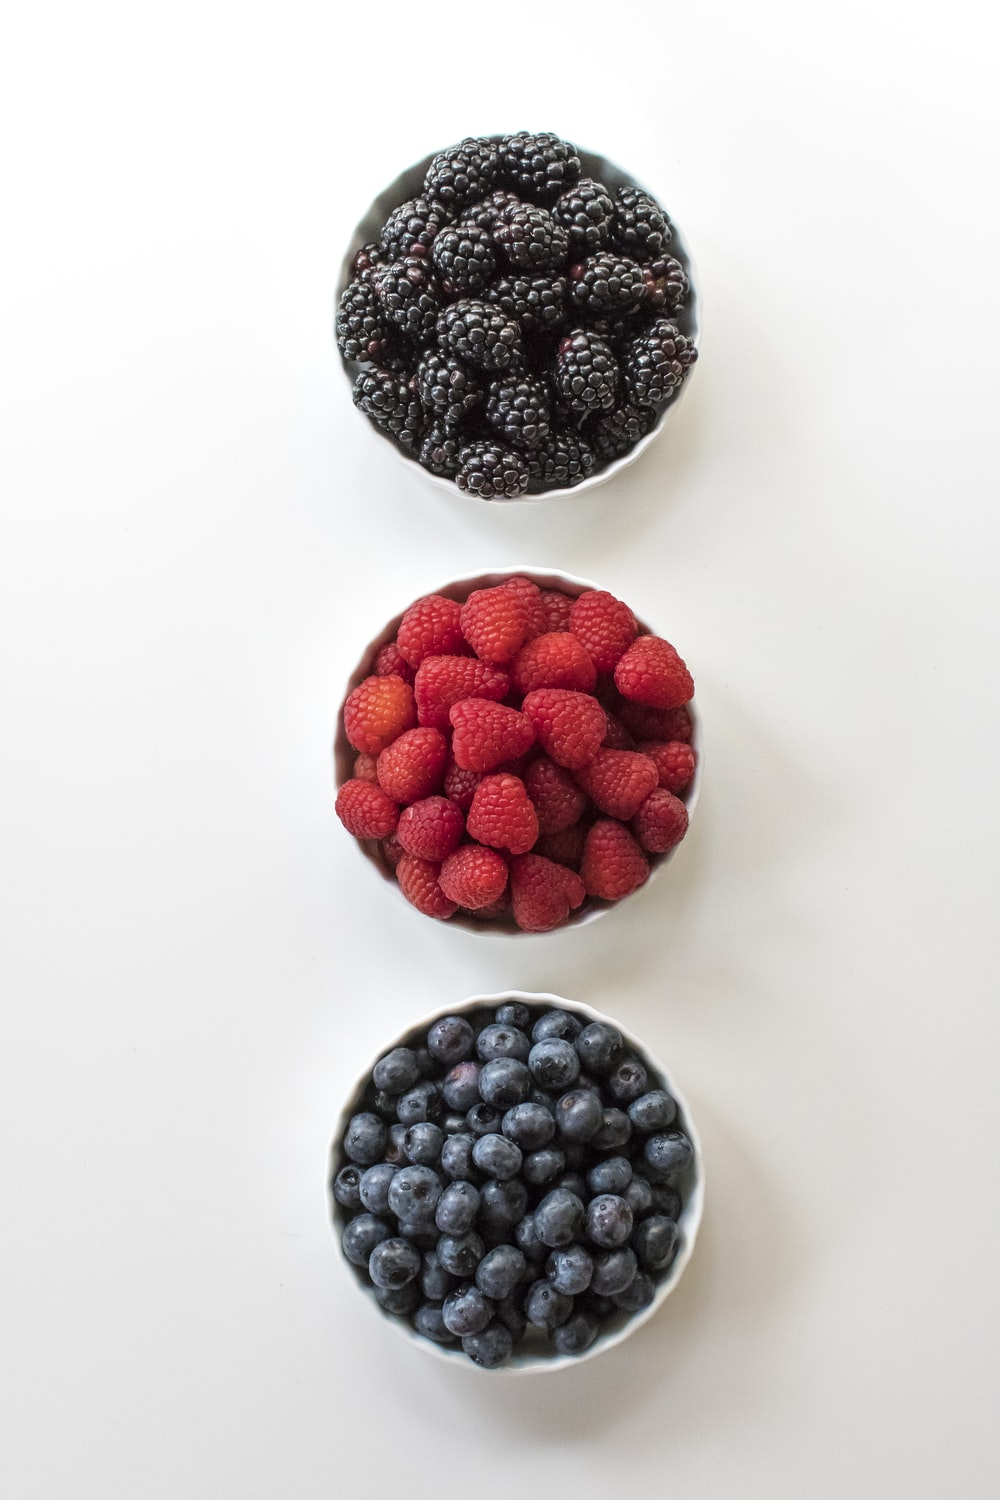 red and black berries on white surface